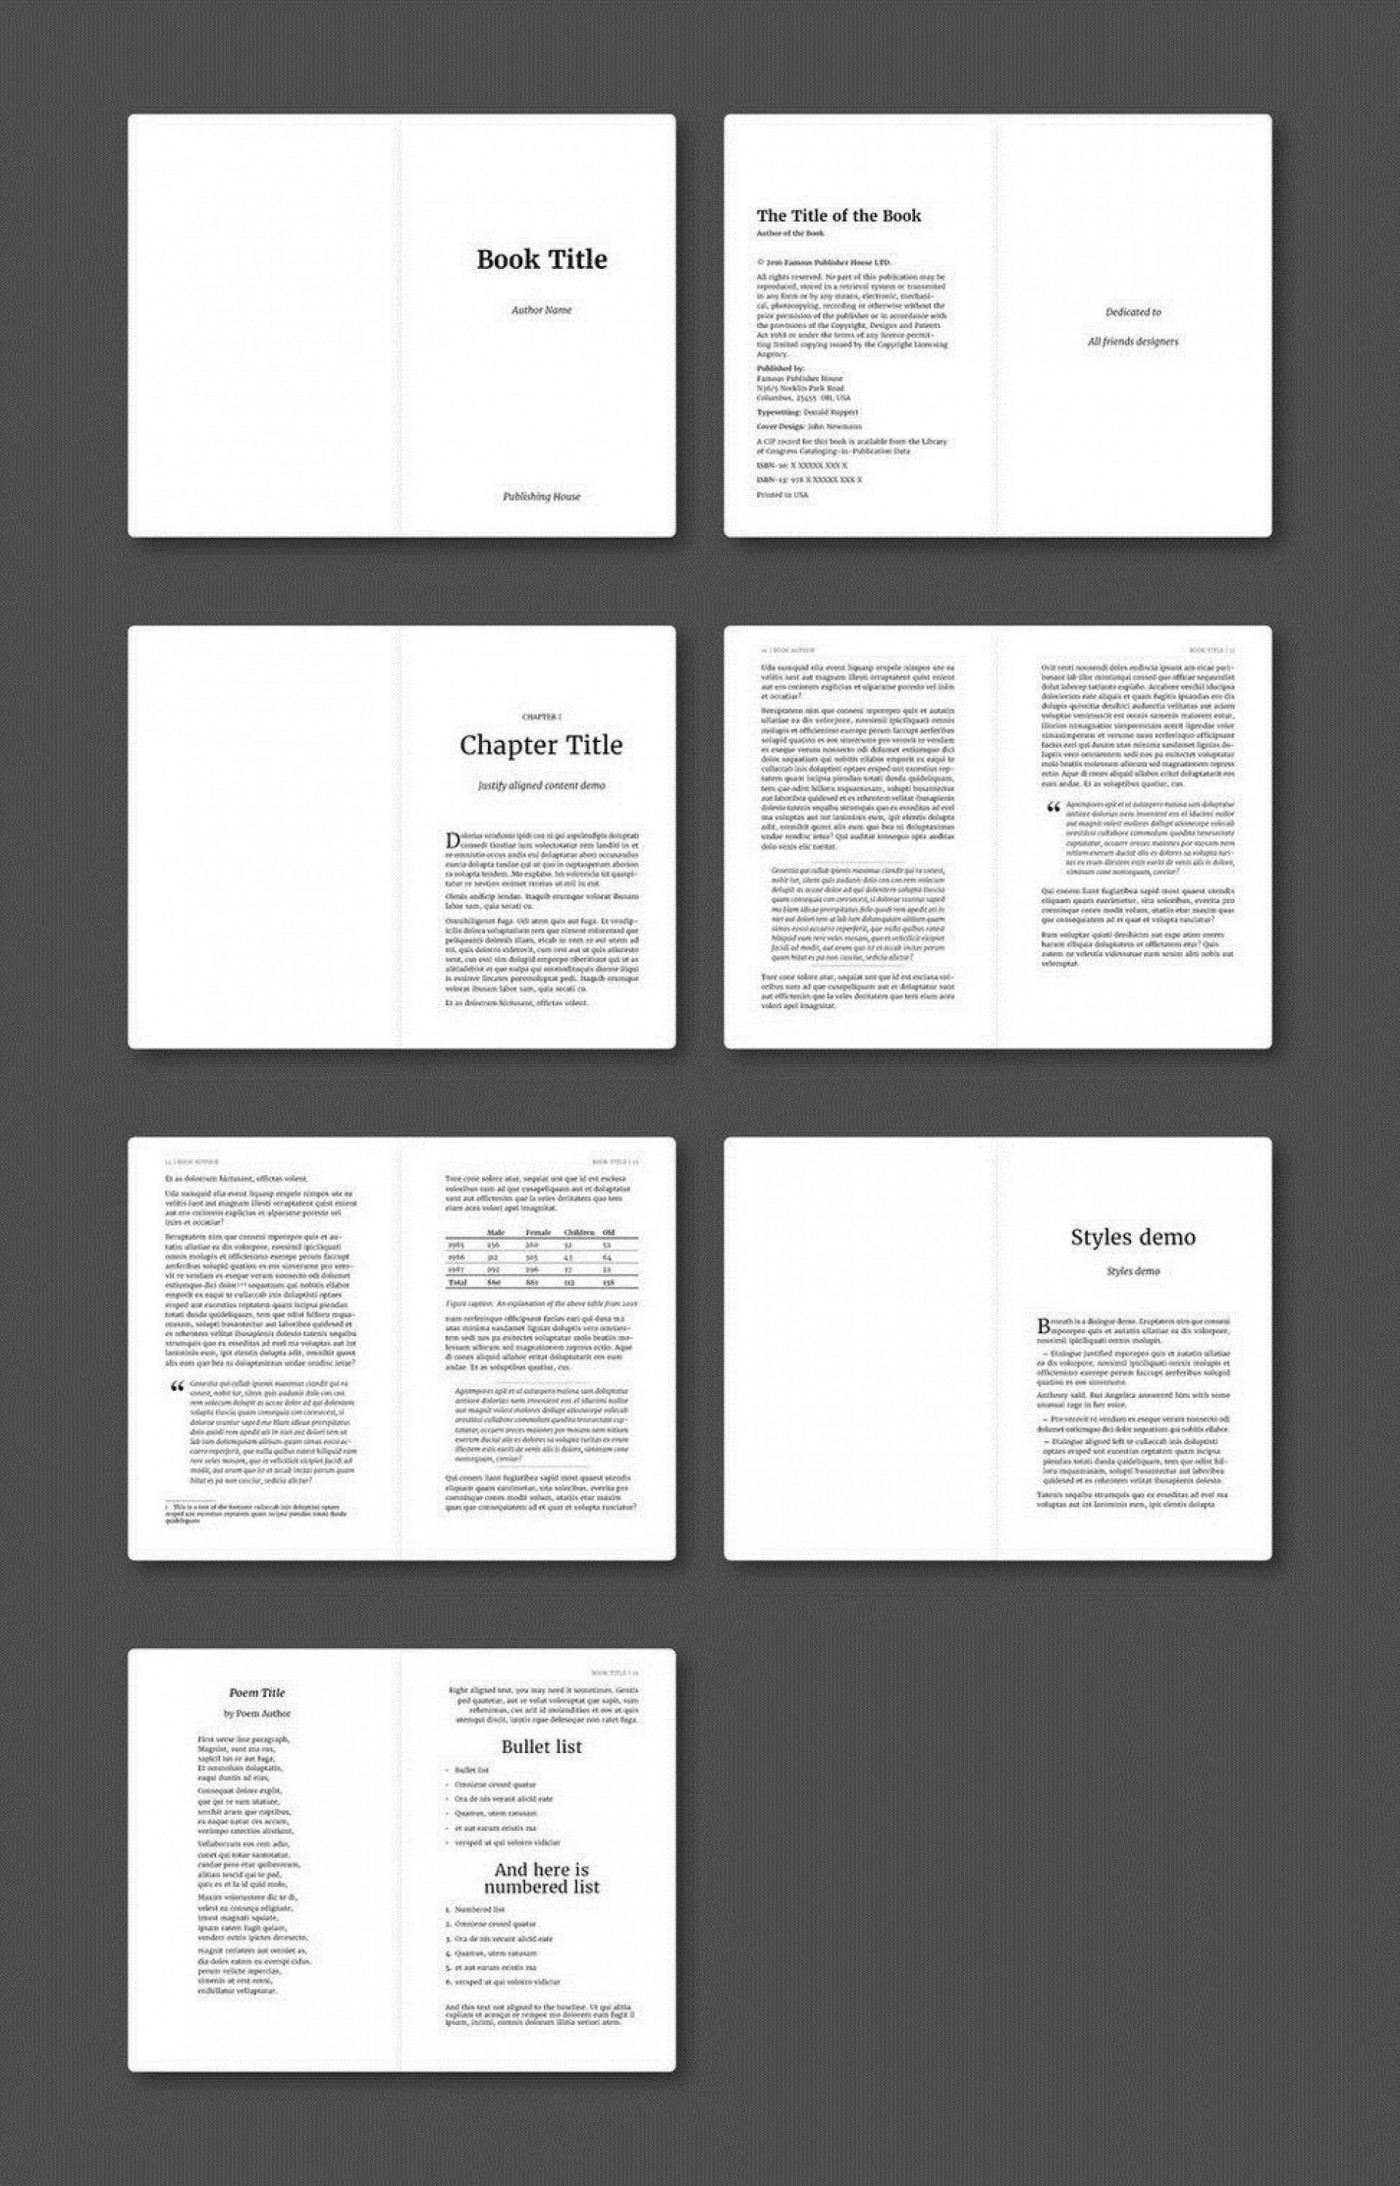 002 Fearsome Free Indesign Book Template Download High Definition  Cs6 Adobe1400